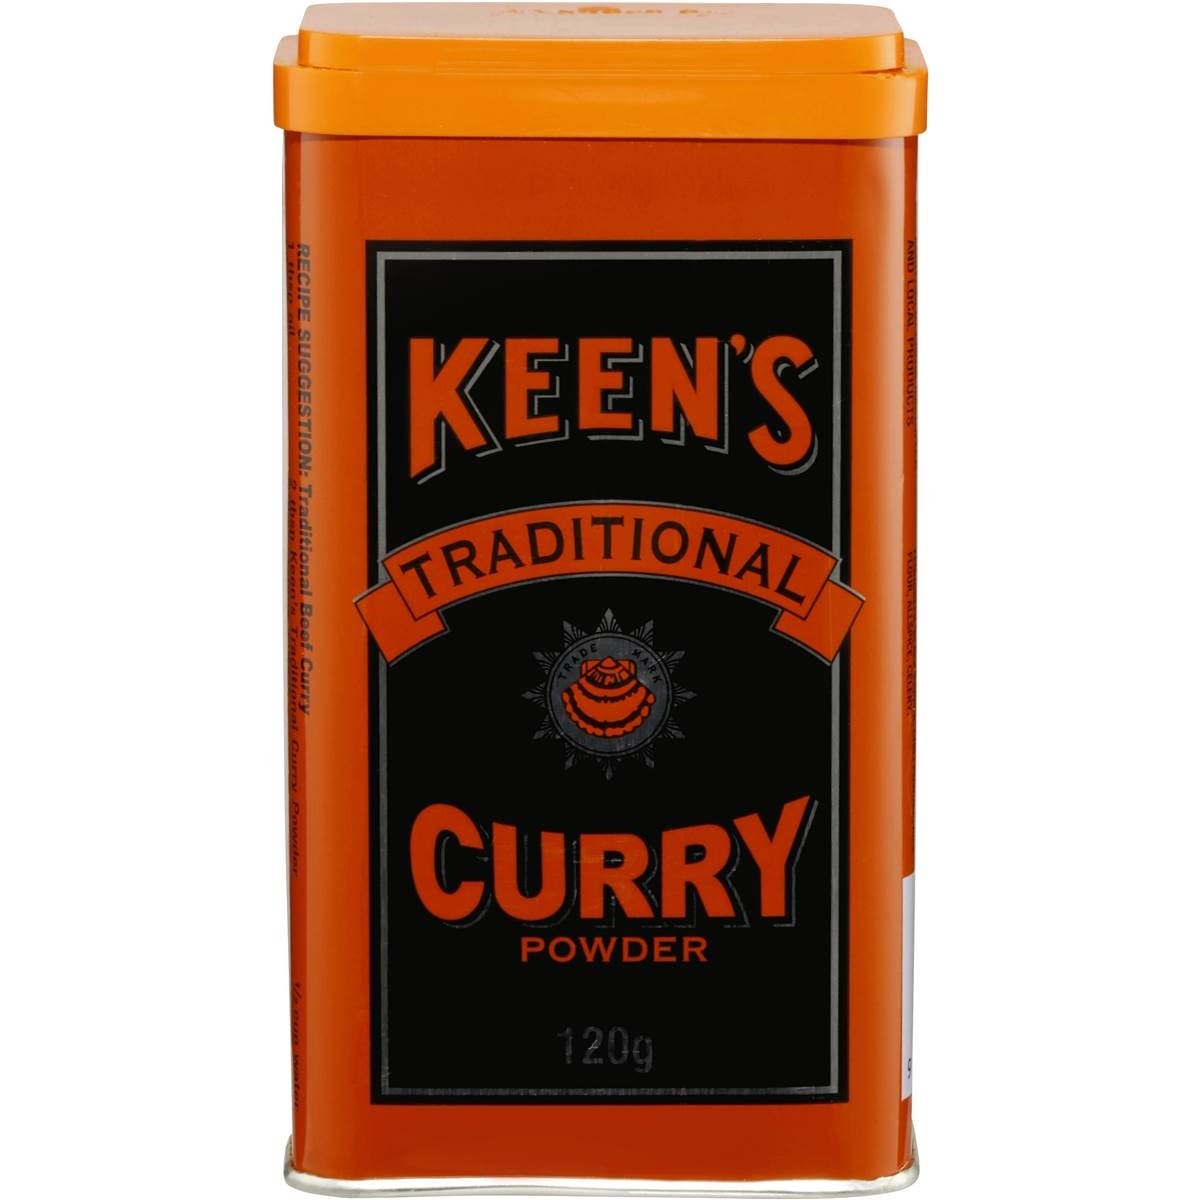 Keen's Traditional Curry Powder 120g